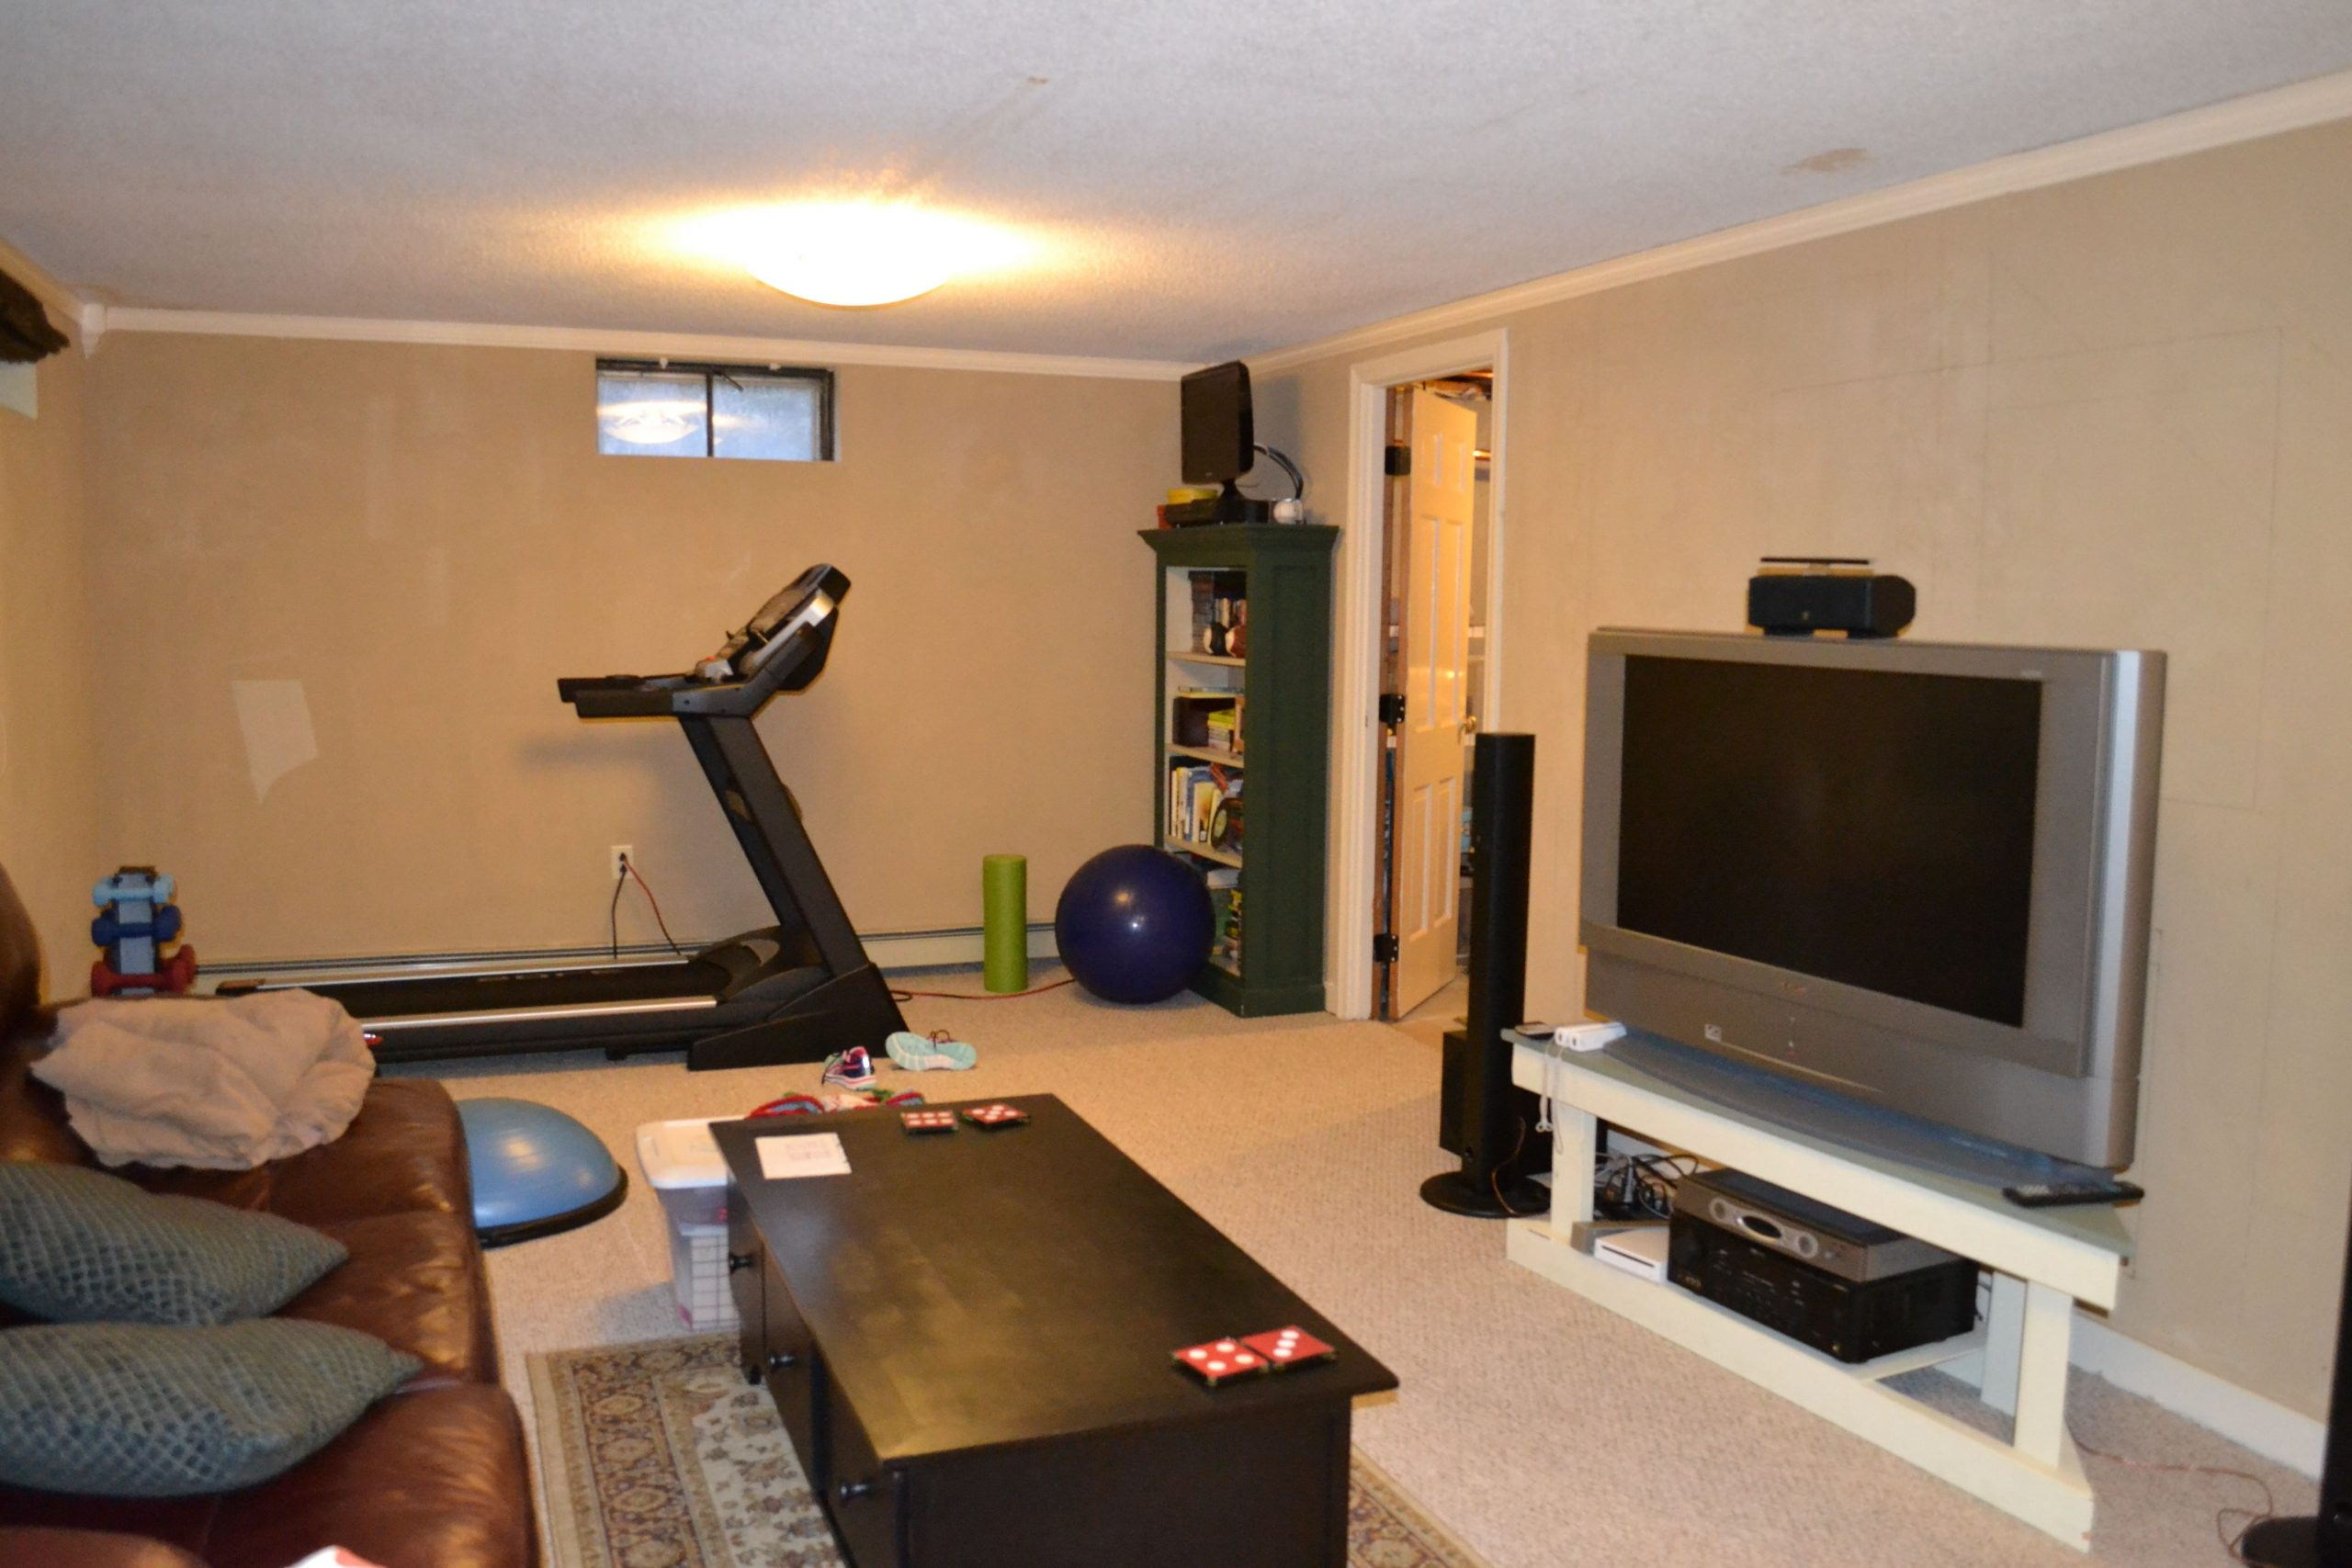 Photos Combining Family Room And Gym? Google Search Decorate Living Room With Treadmill